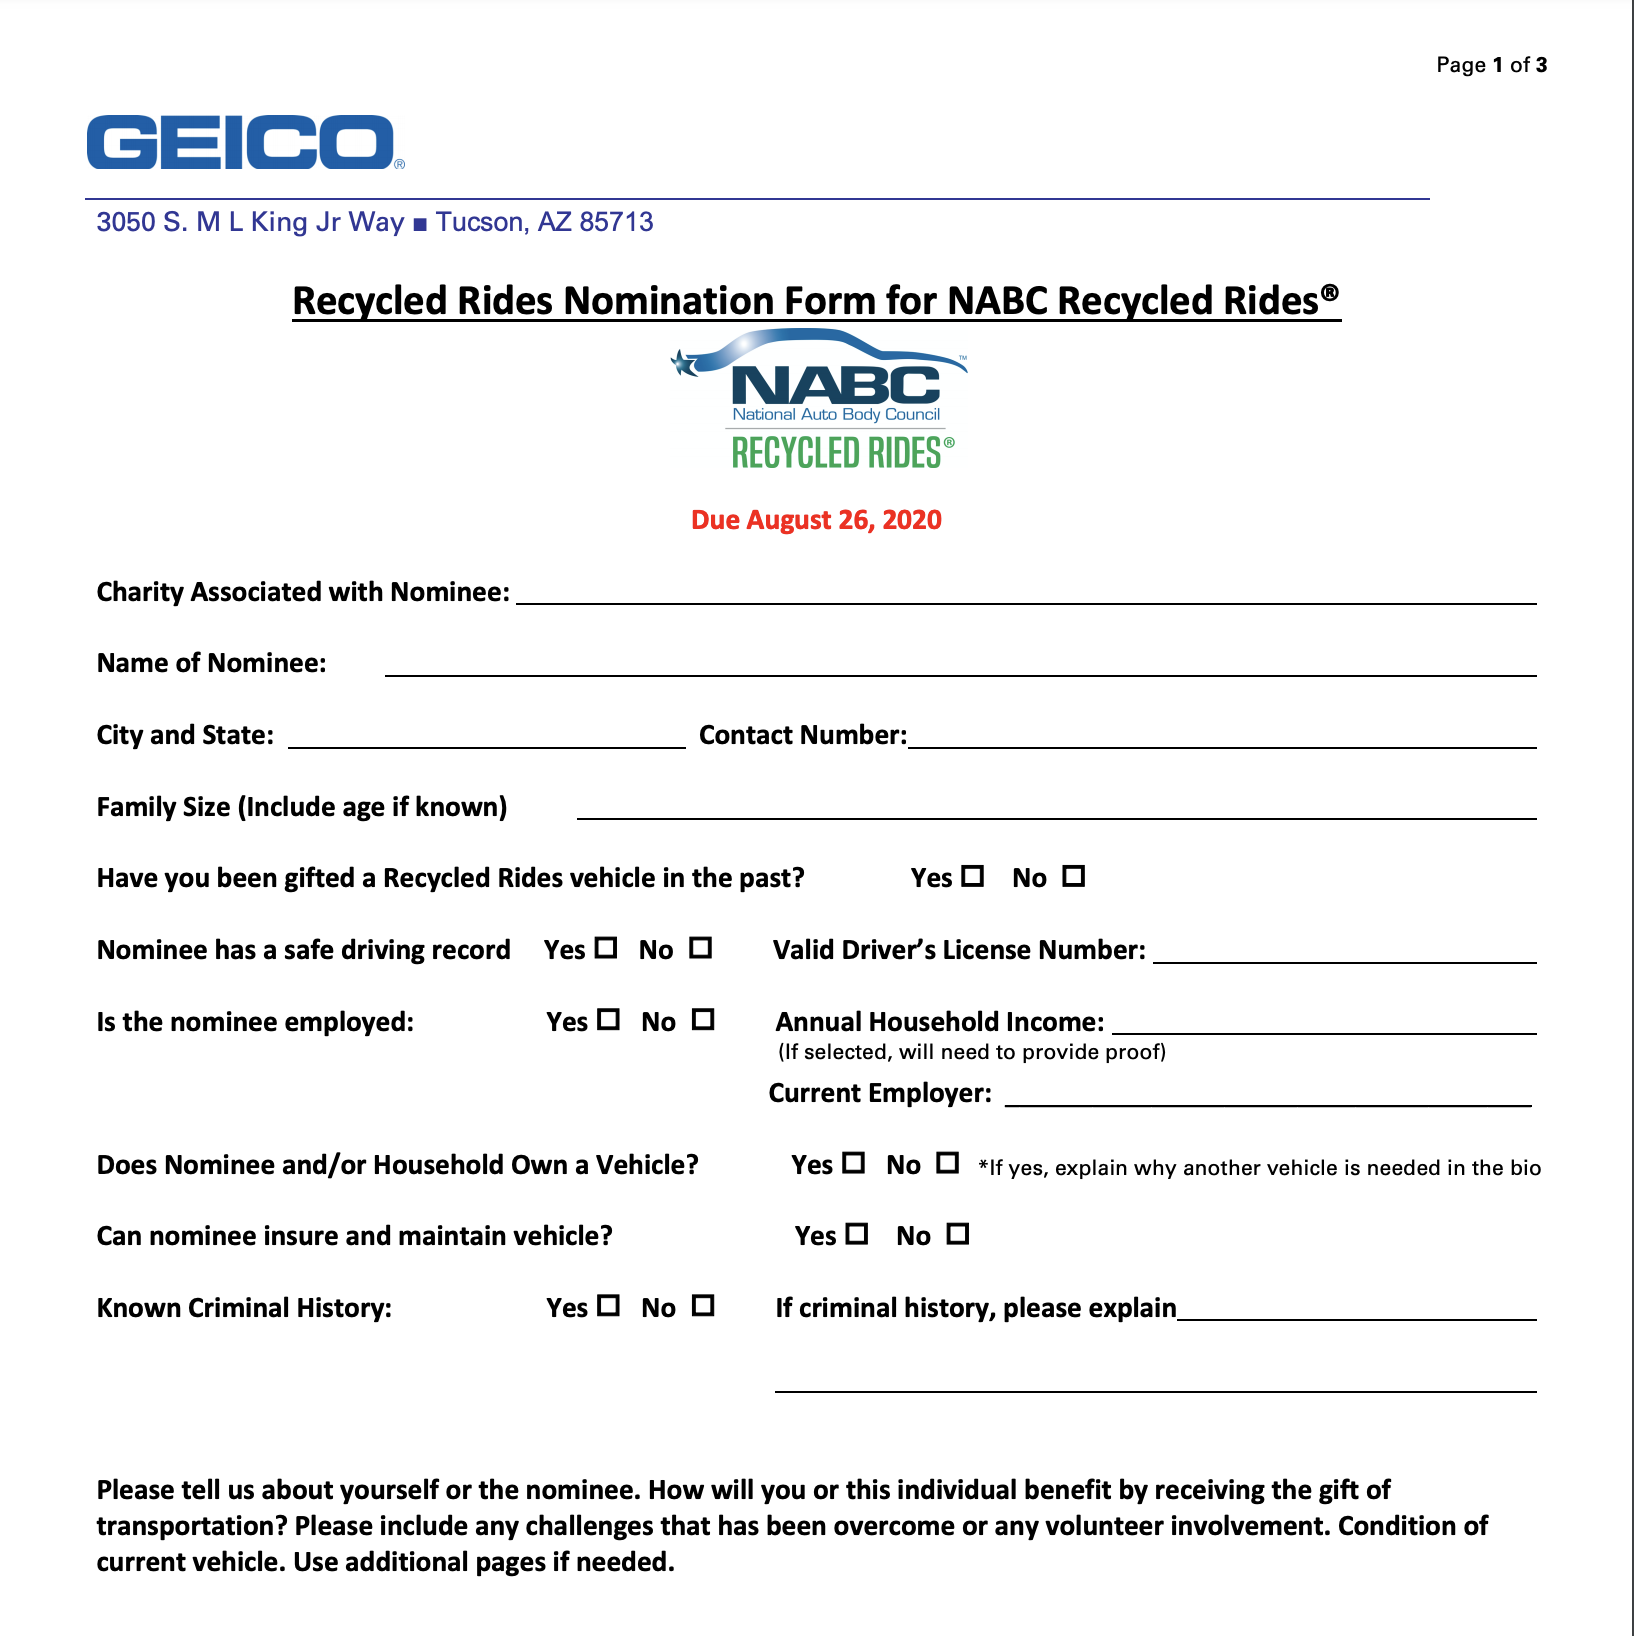 NABC's Recycled Rides Nomination Form